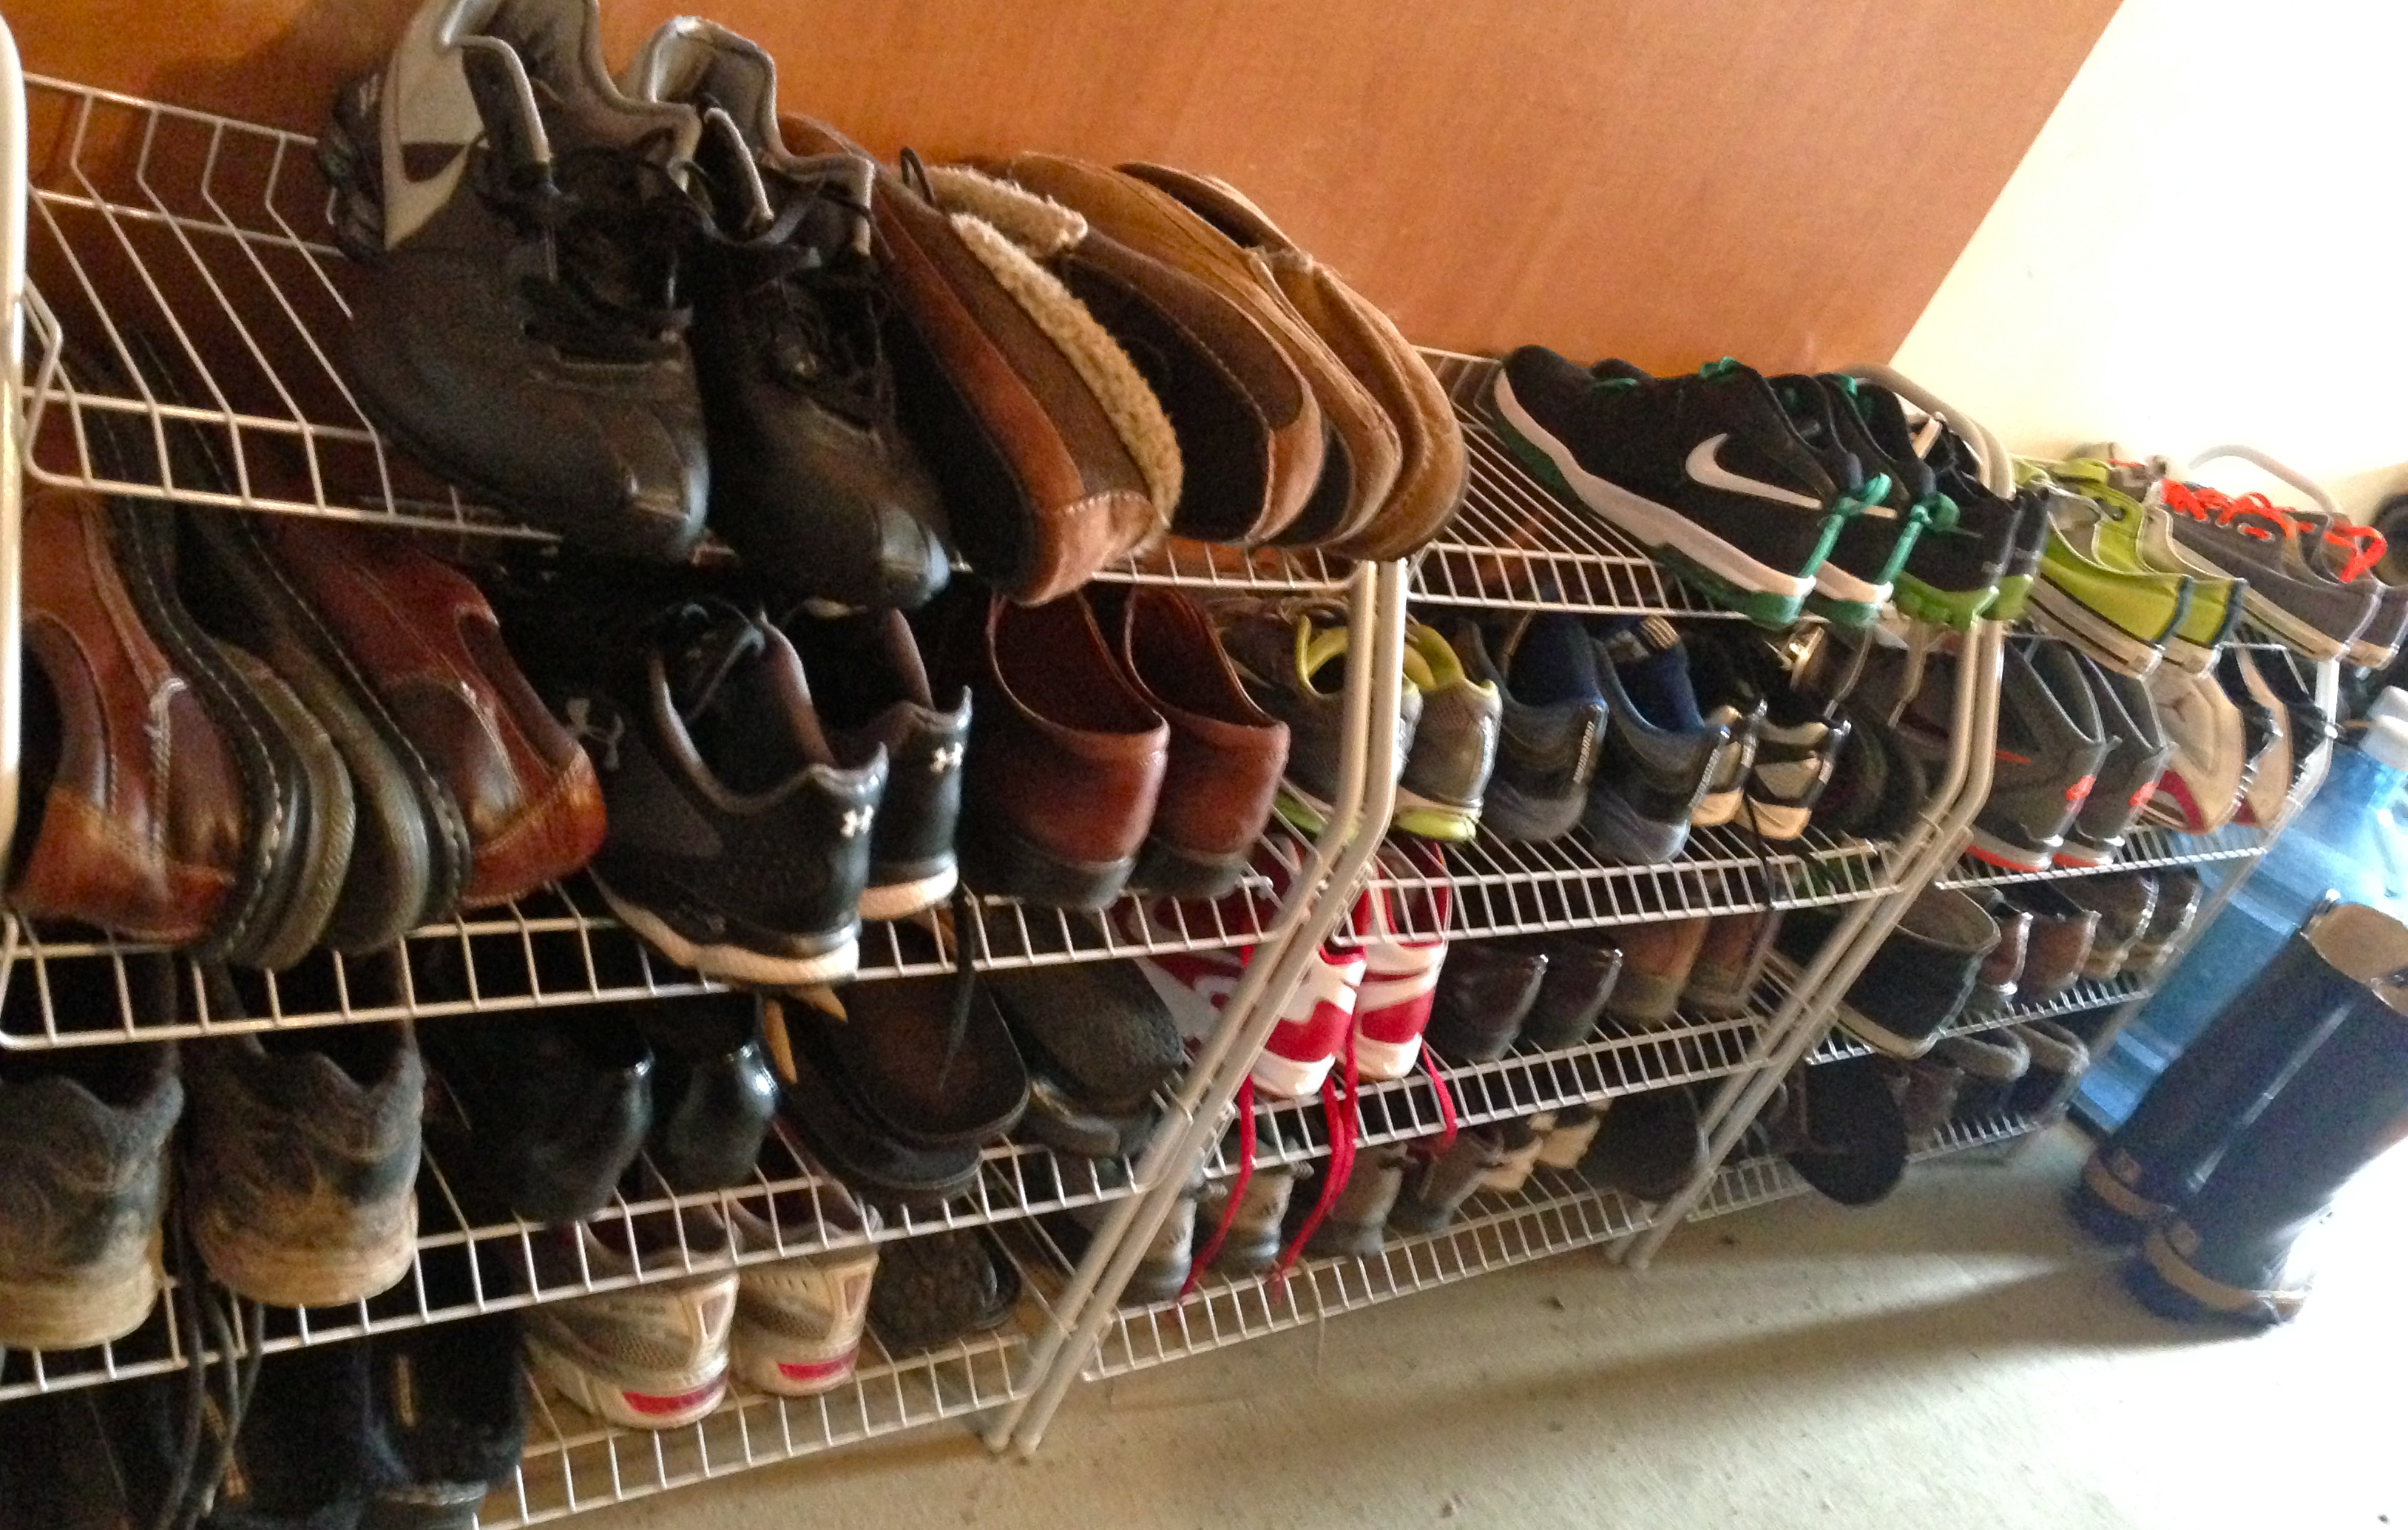 Shoe rack for garage - I Purposefully Included The Winter Boots In The Photo As They Will Not Fit On This